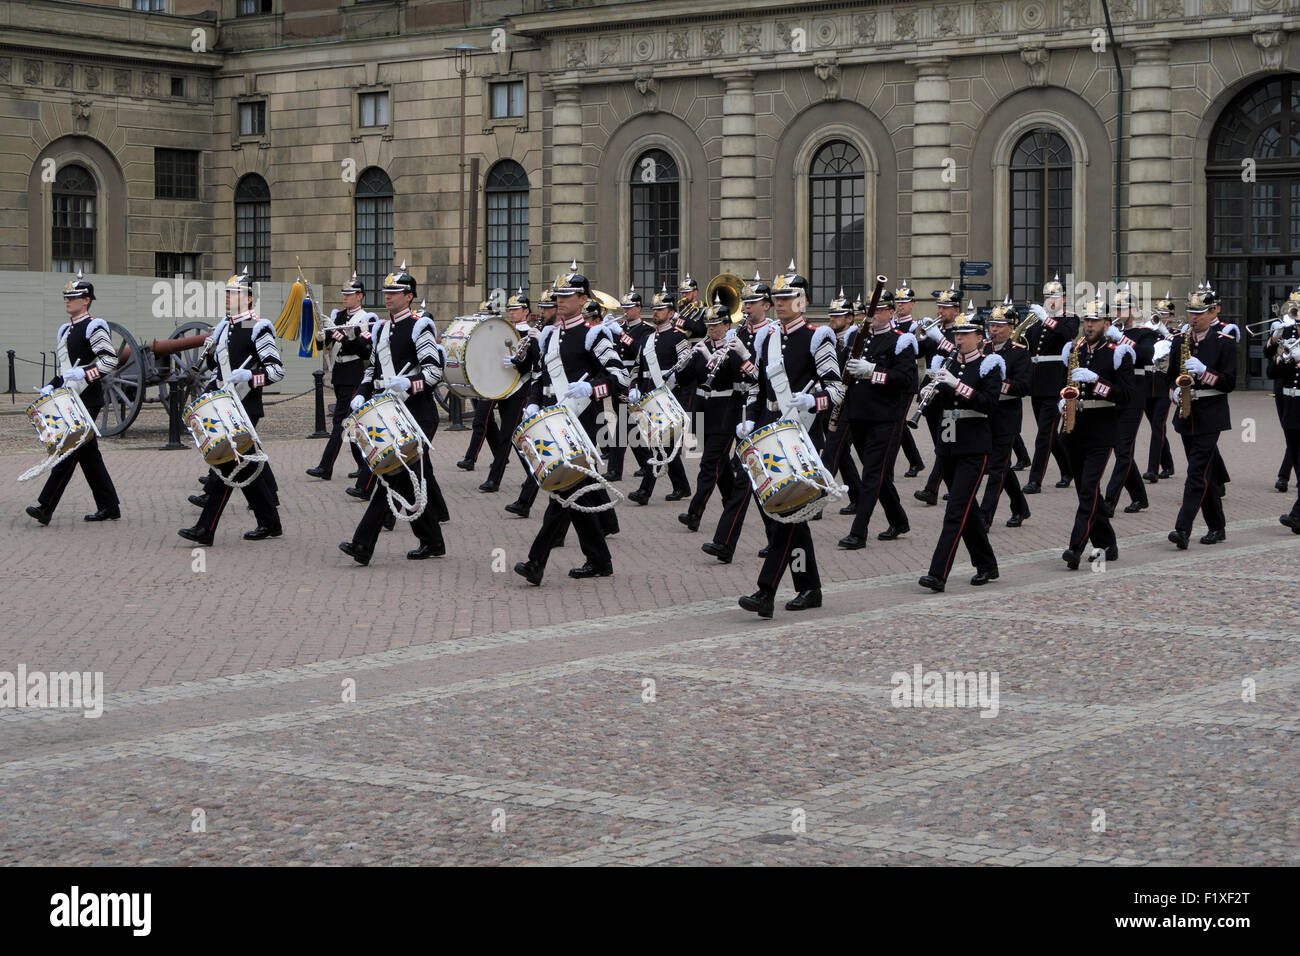 Military marching band during the changing of the guard